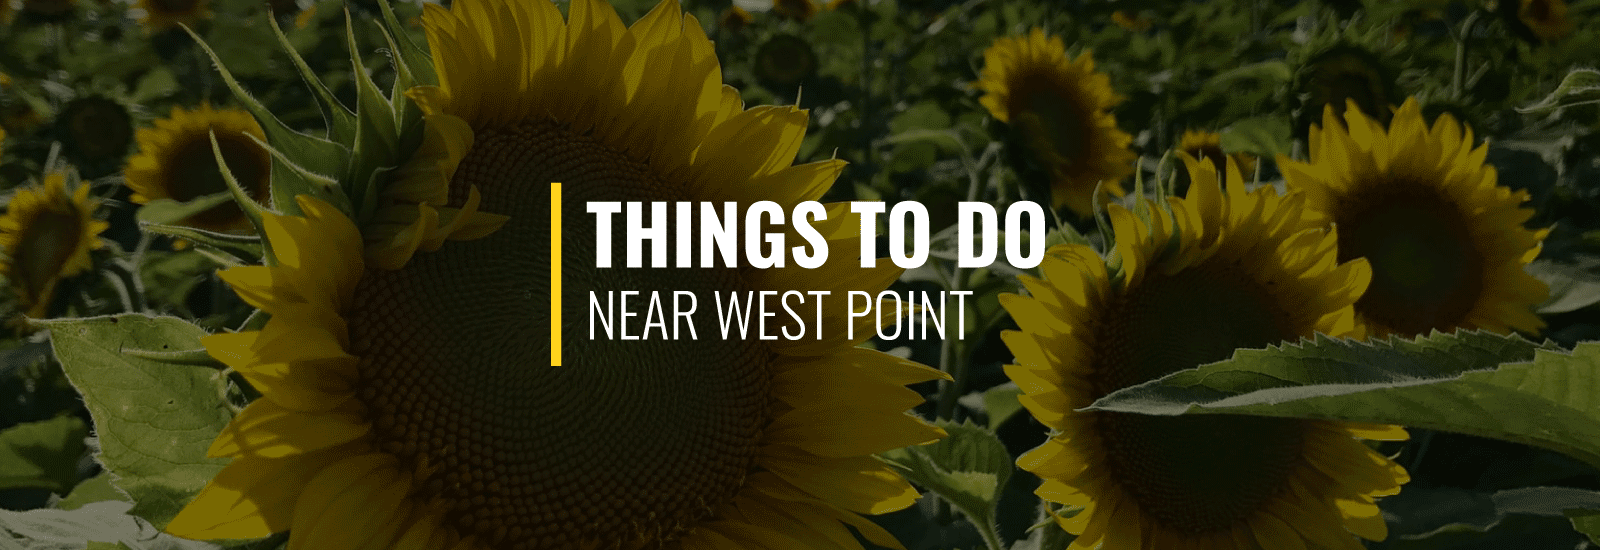 Things to Do in West Point, NY